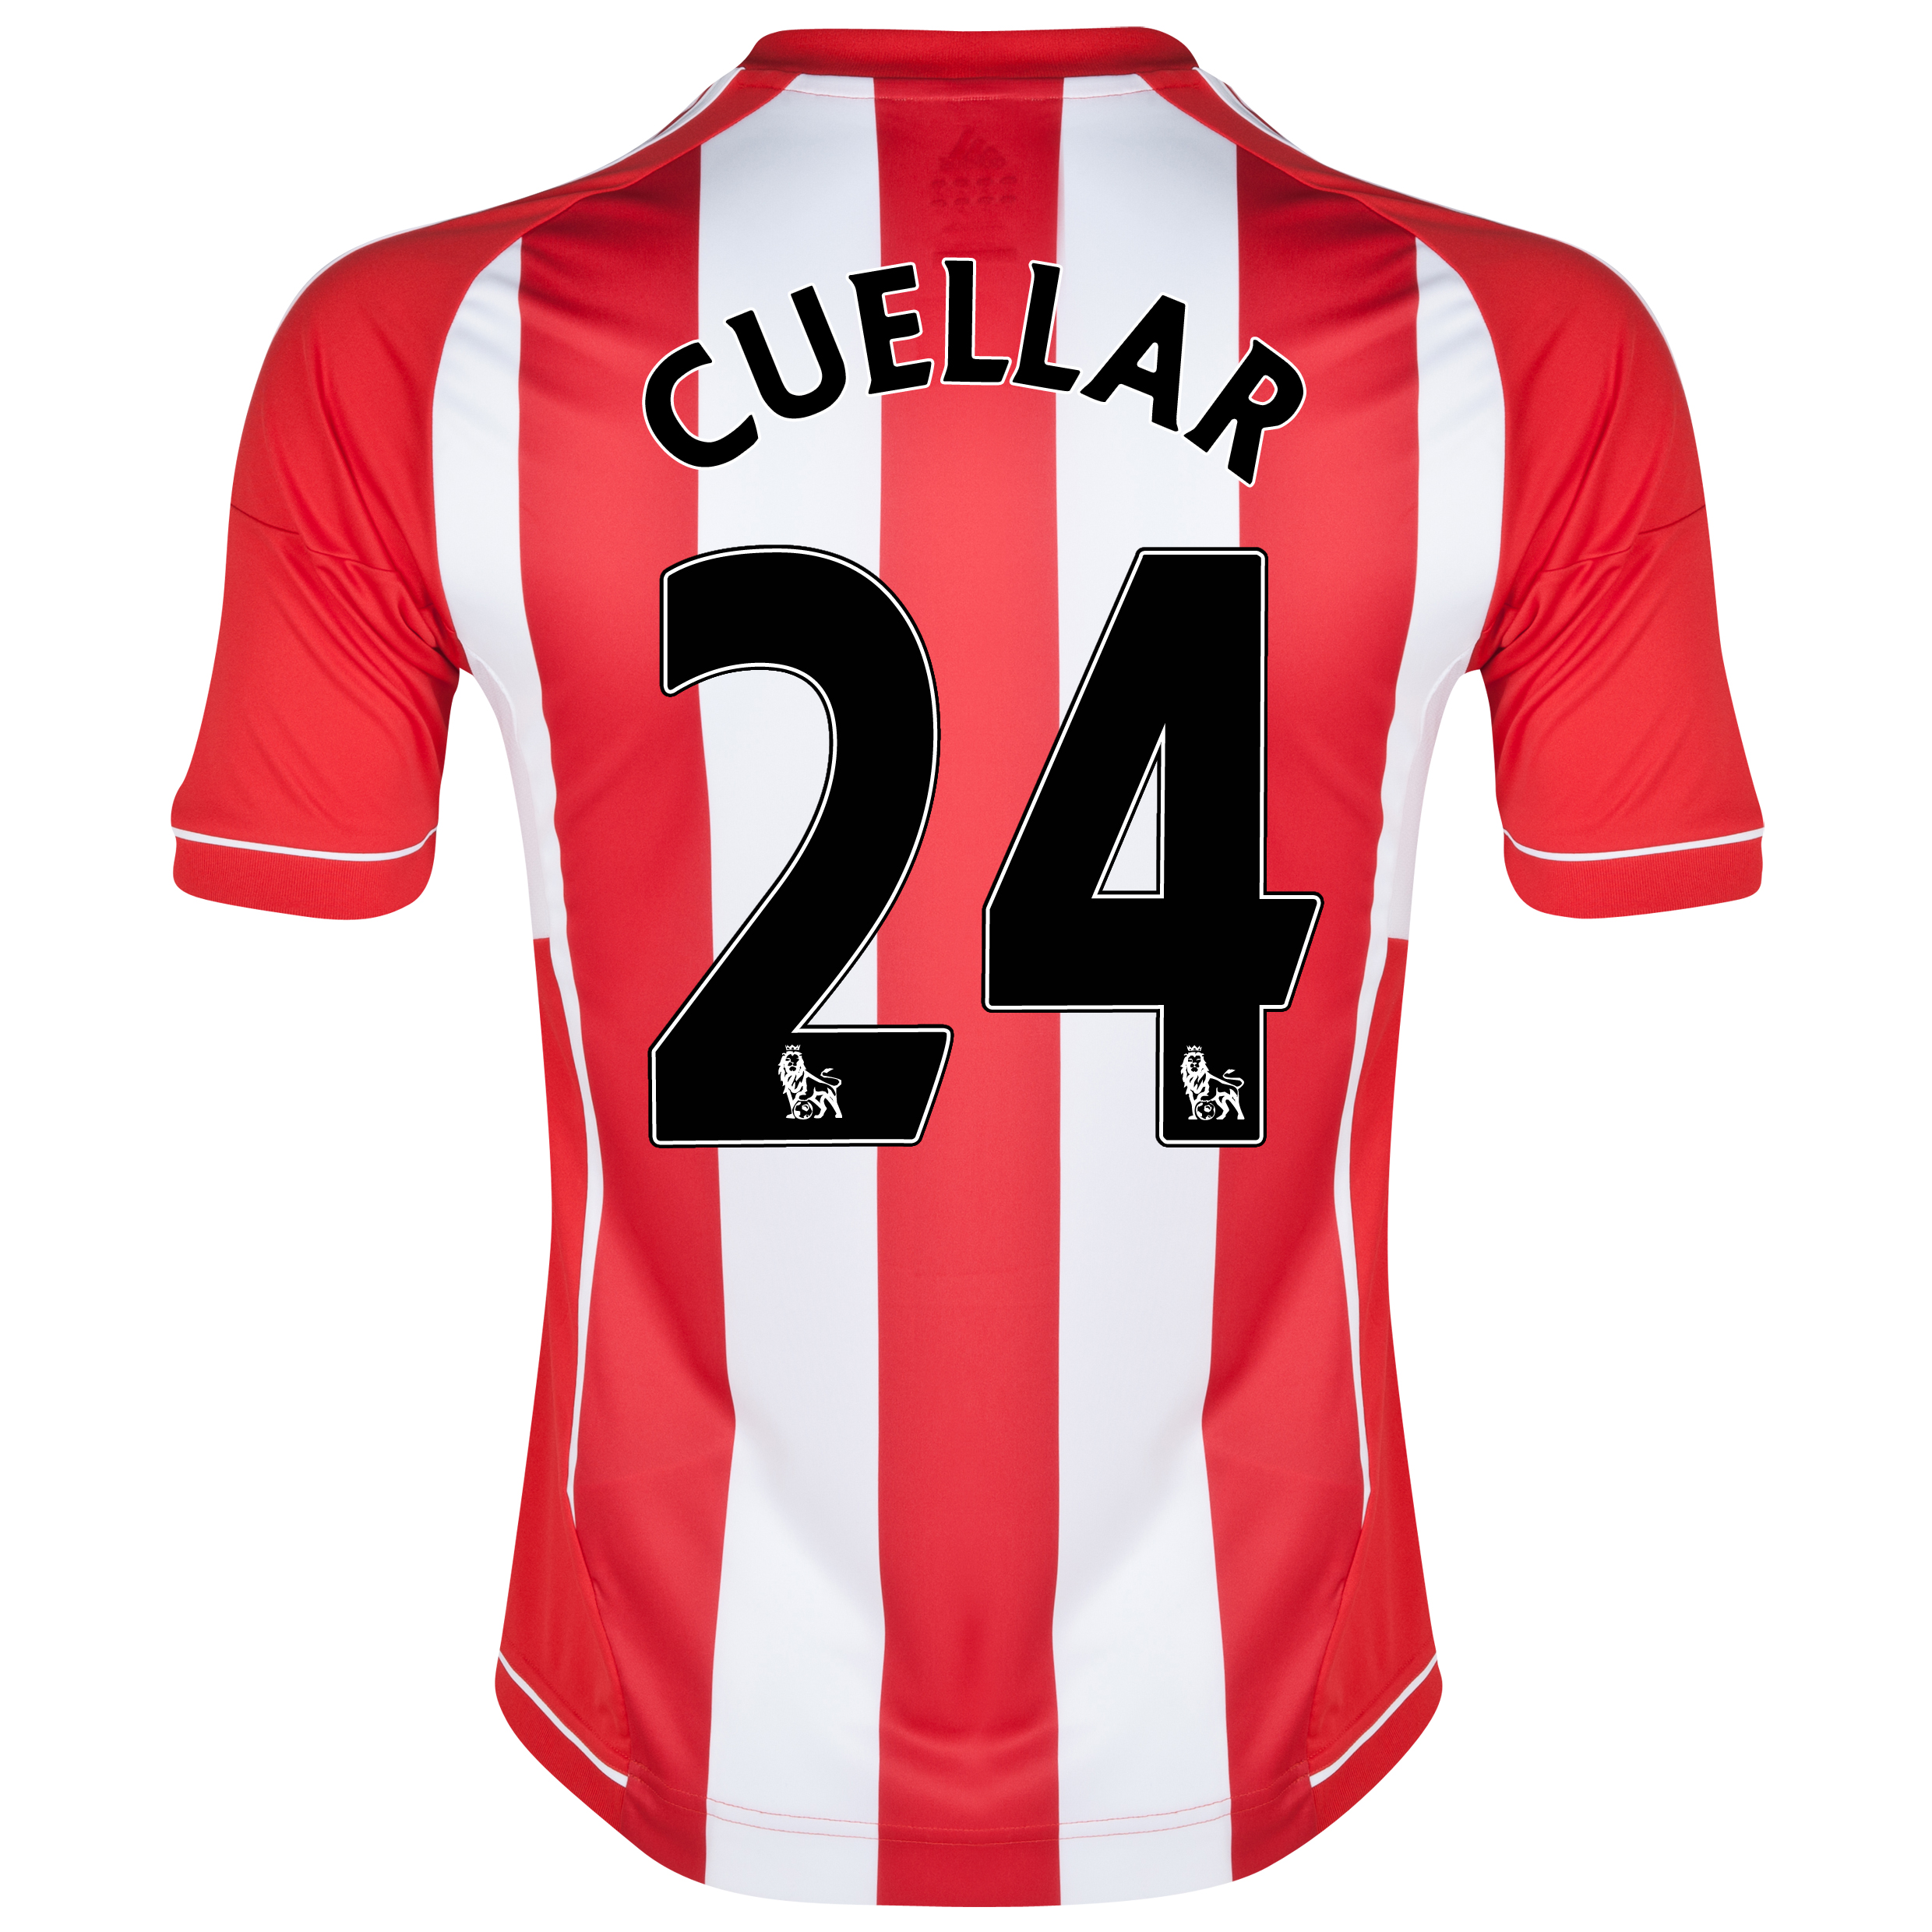 Sunderland Home Shirt 2012/13 - Junior with Cuellar 24 printing